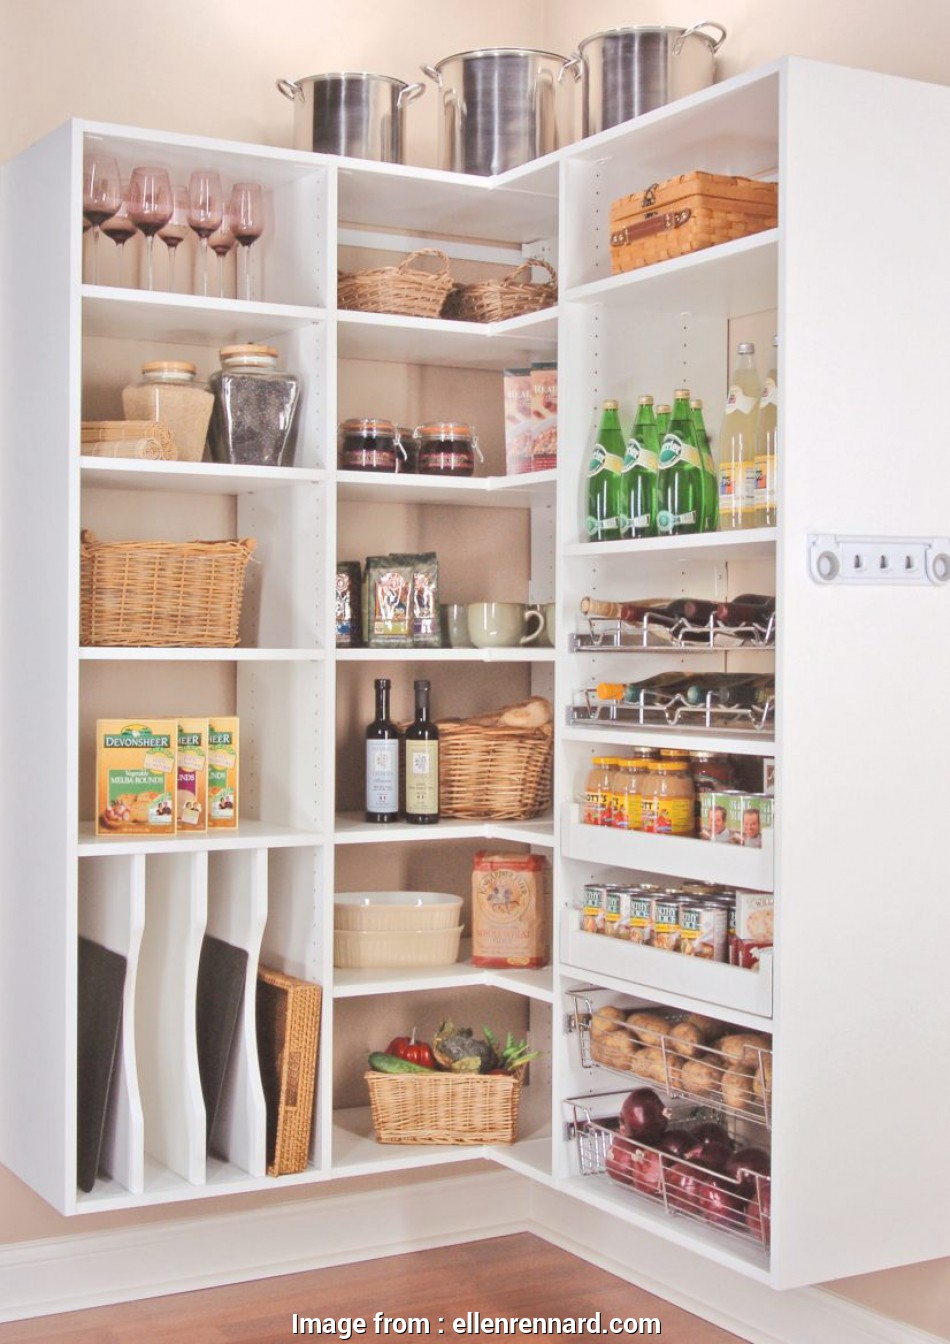 wire shelf storage ideas 86 Examples Indispensable White Solid Wood Corner Pantry Cabinet Storage With Rattan Bins, Wire Racks Organizers, Kitchen Solutions Under Ideas Wire Shelf Storage Ideas Creative 86 Examples Indispensable White Solid Wood Corner Pantry Cabinet Storage With Rattan Bins, Wire Racks Organizers, Kitchen Solutions Under Ideas Solutions